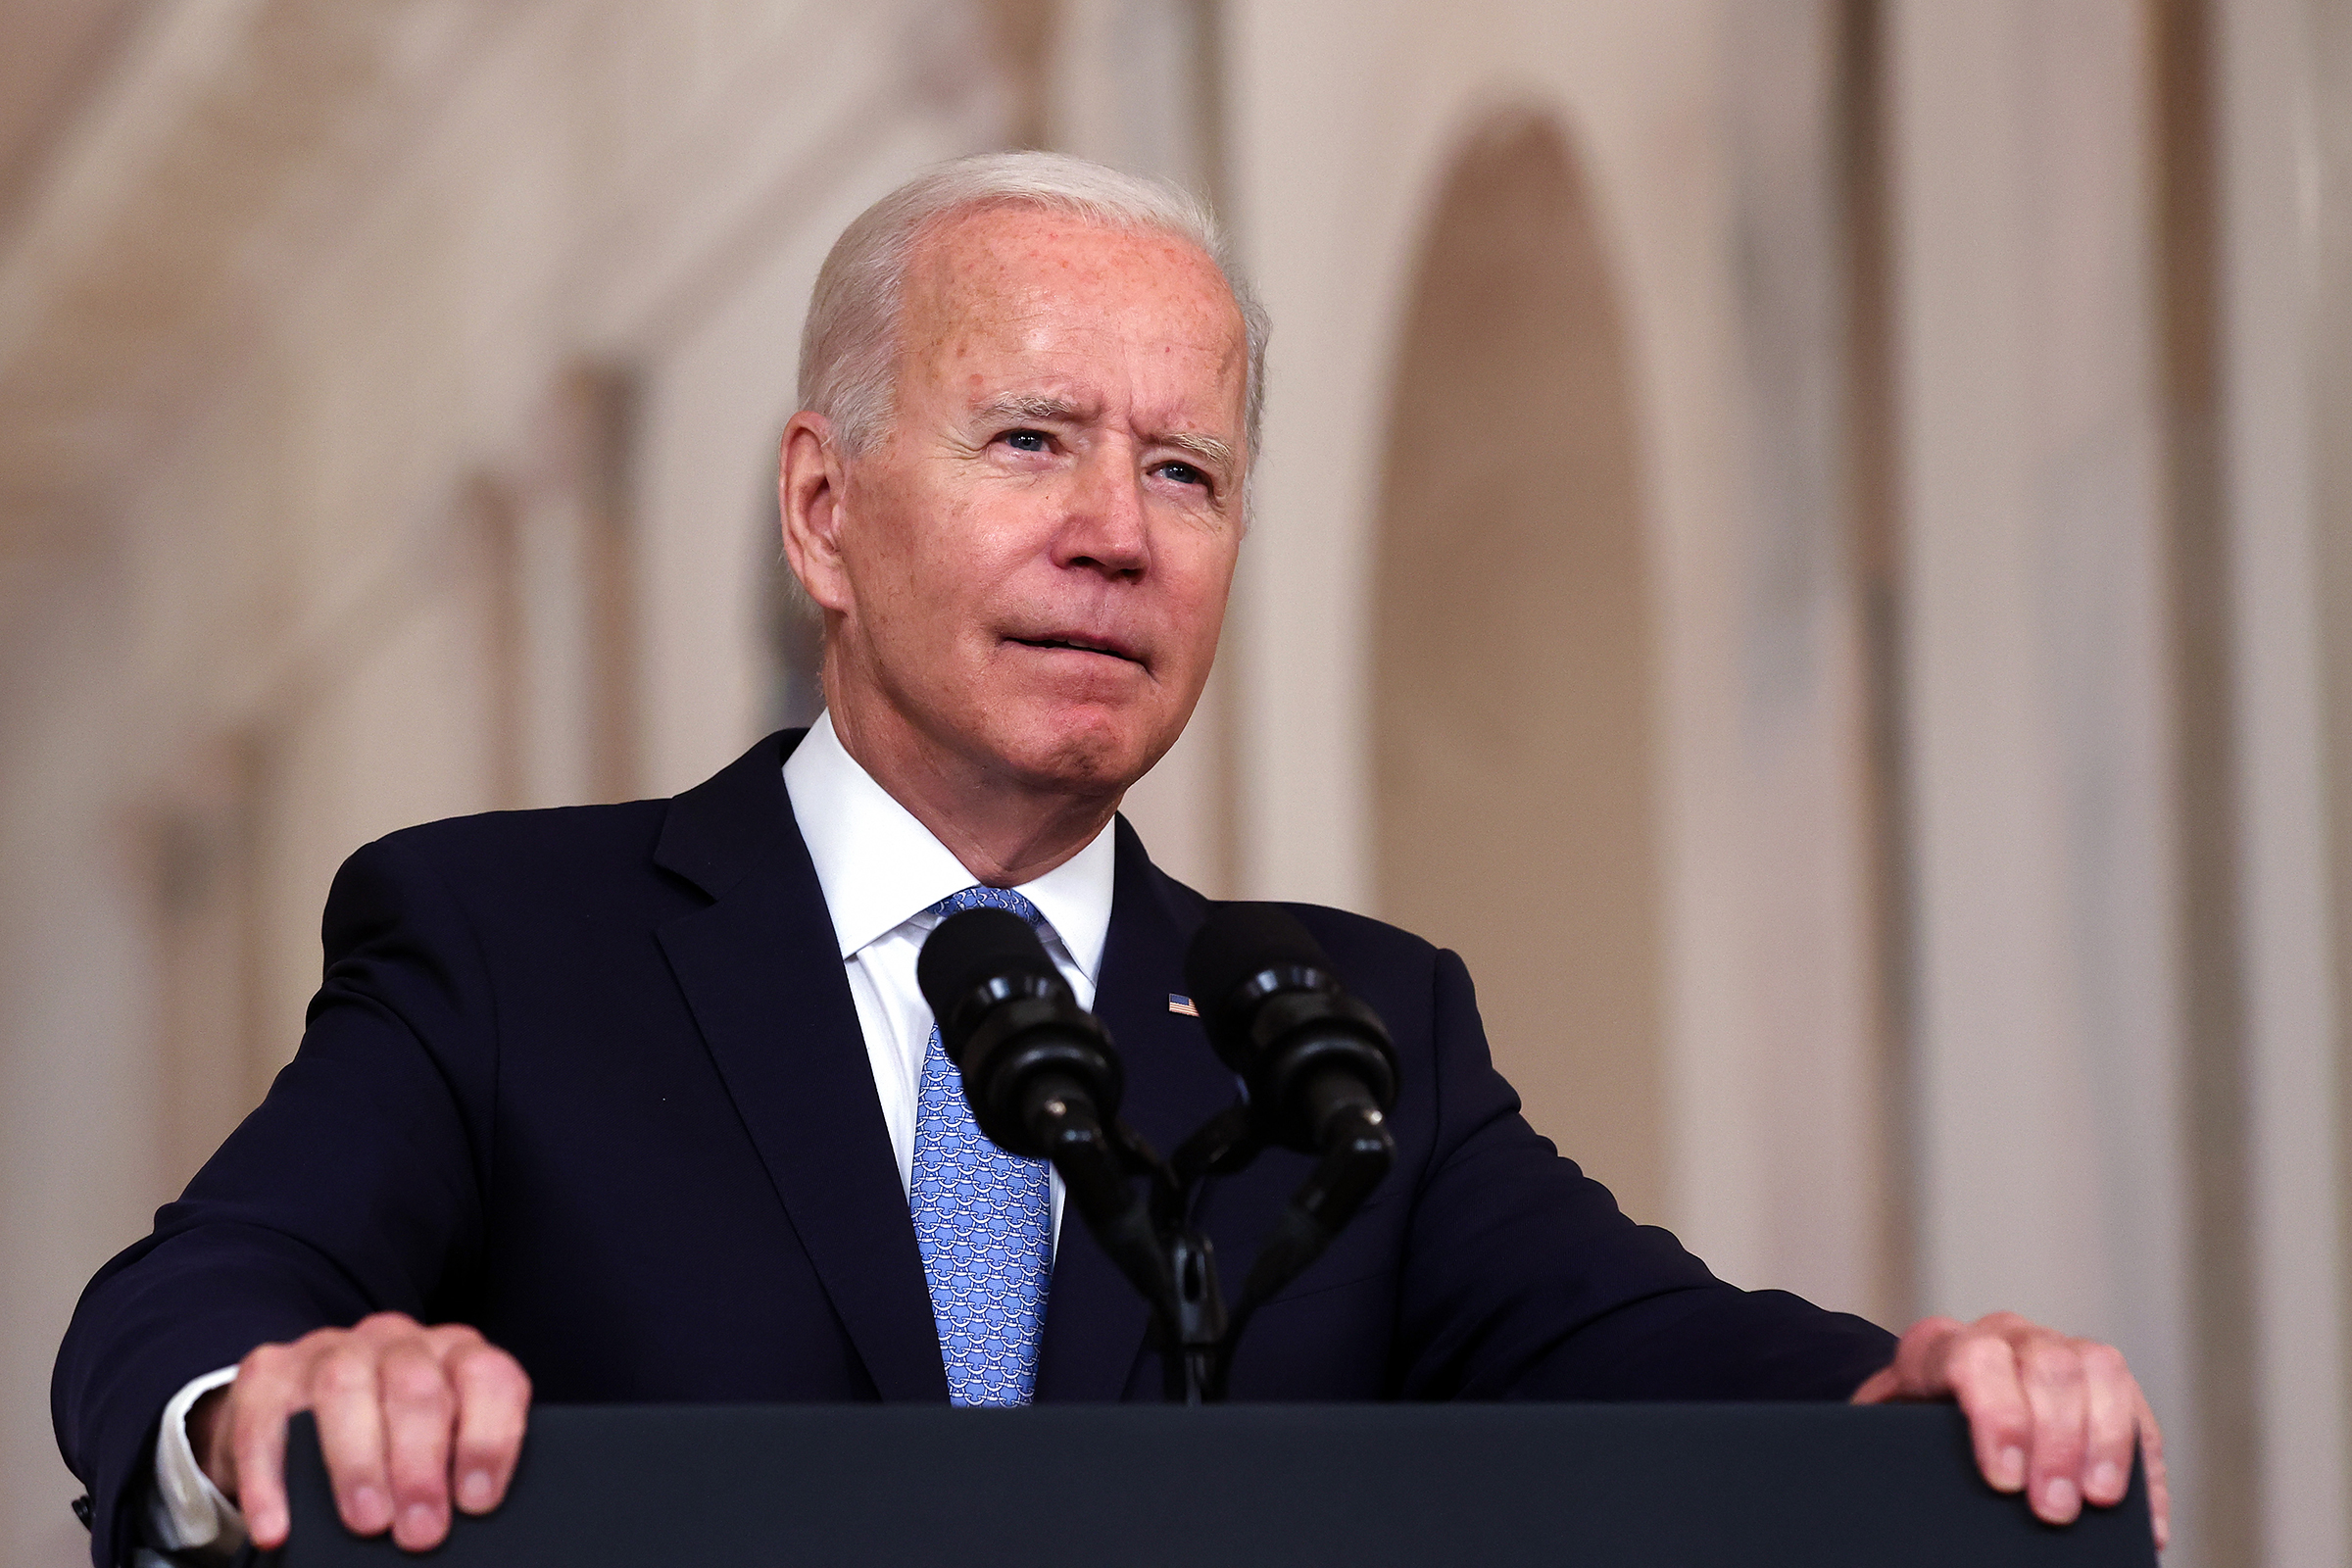 President Joe Biden delivers remarks at the White House on August 31, in Washington, DC.